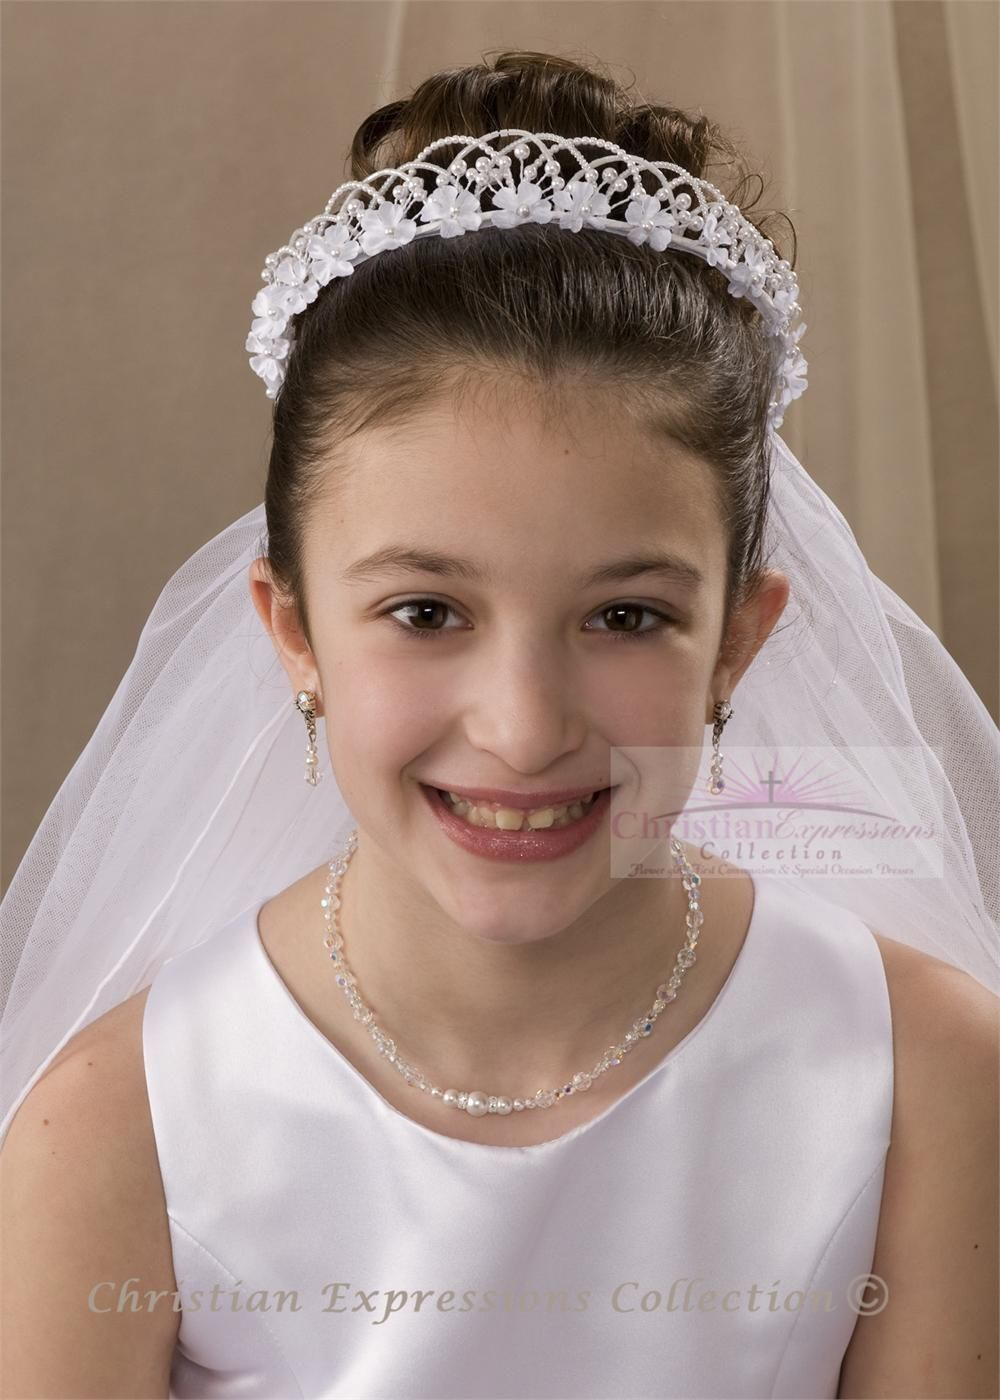 First Communion Hairstyle 7 | First Communion | Pinterest ...